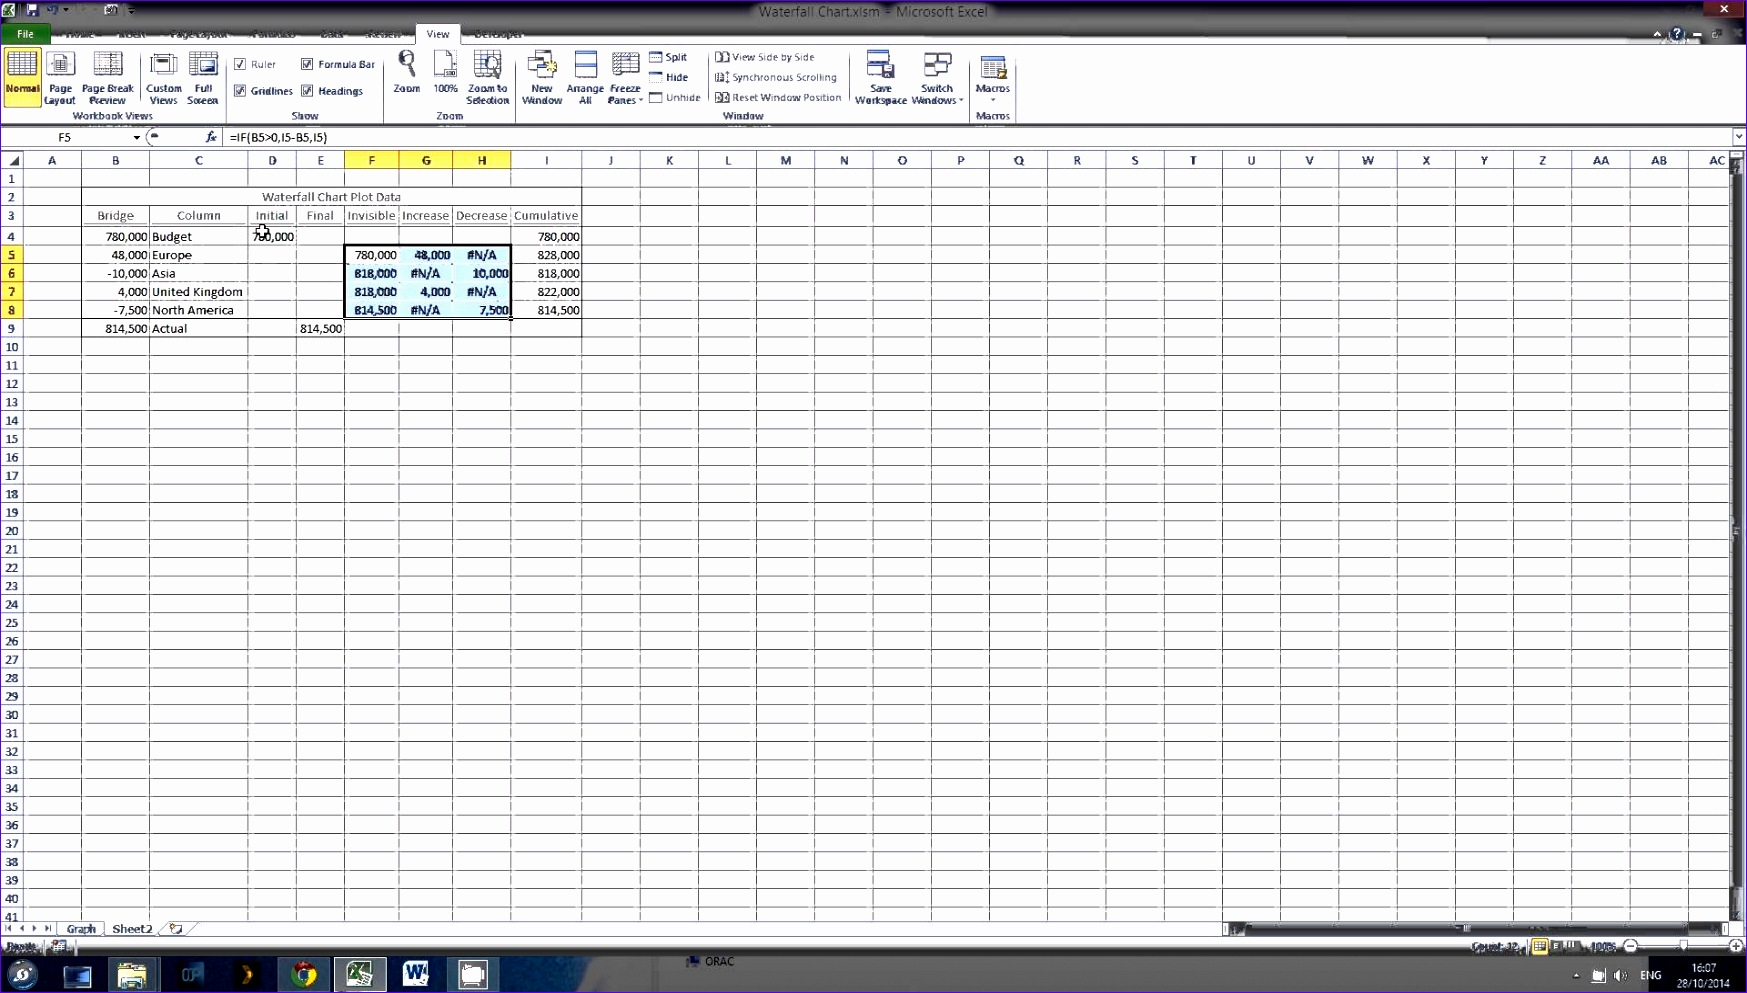 Excel Waterfall Chart Template with Negative Values Hvcha Best Of Excel Waterfall Chart Tutorial 1